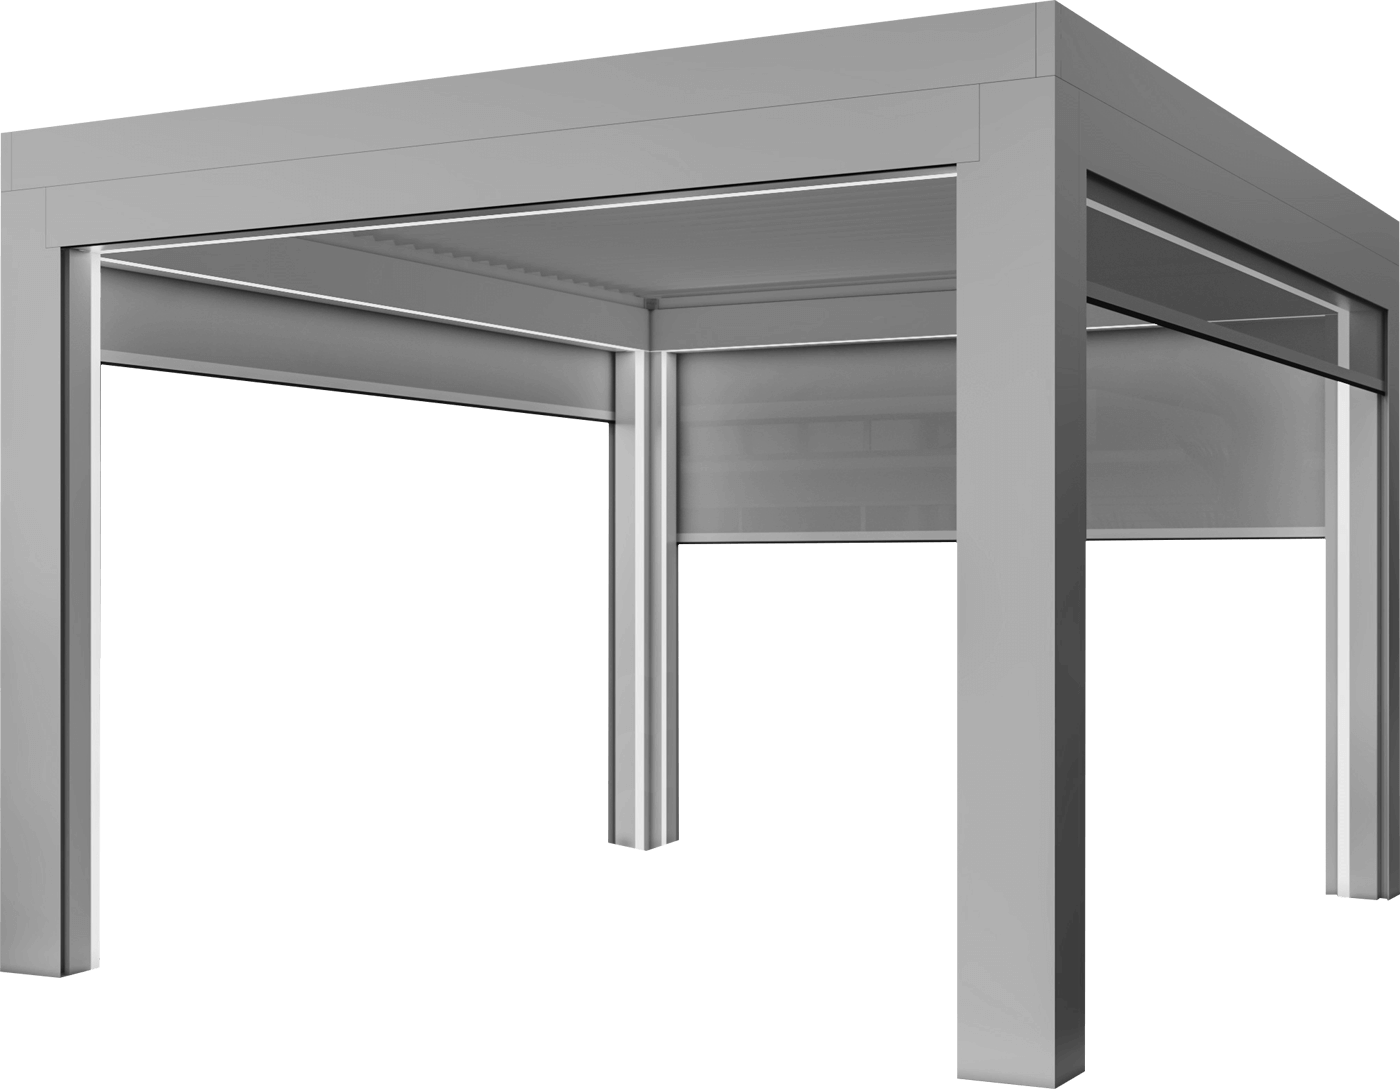 Rendered gray pergola with light strips around frame and screens partially deployed on three sides